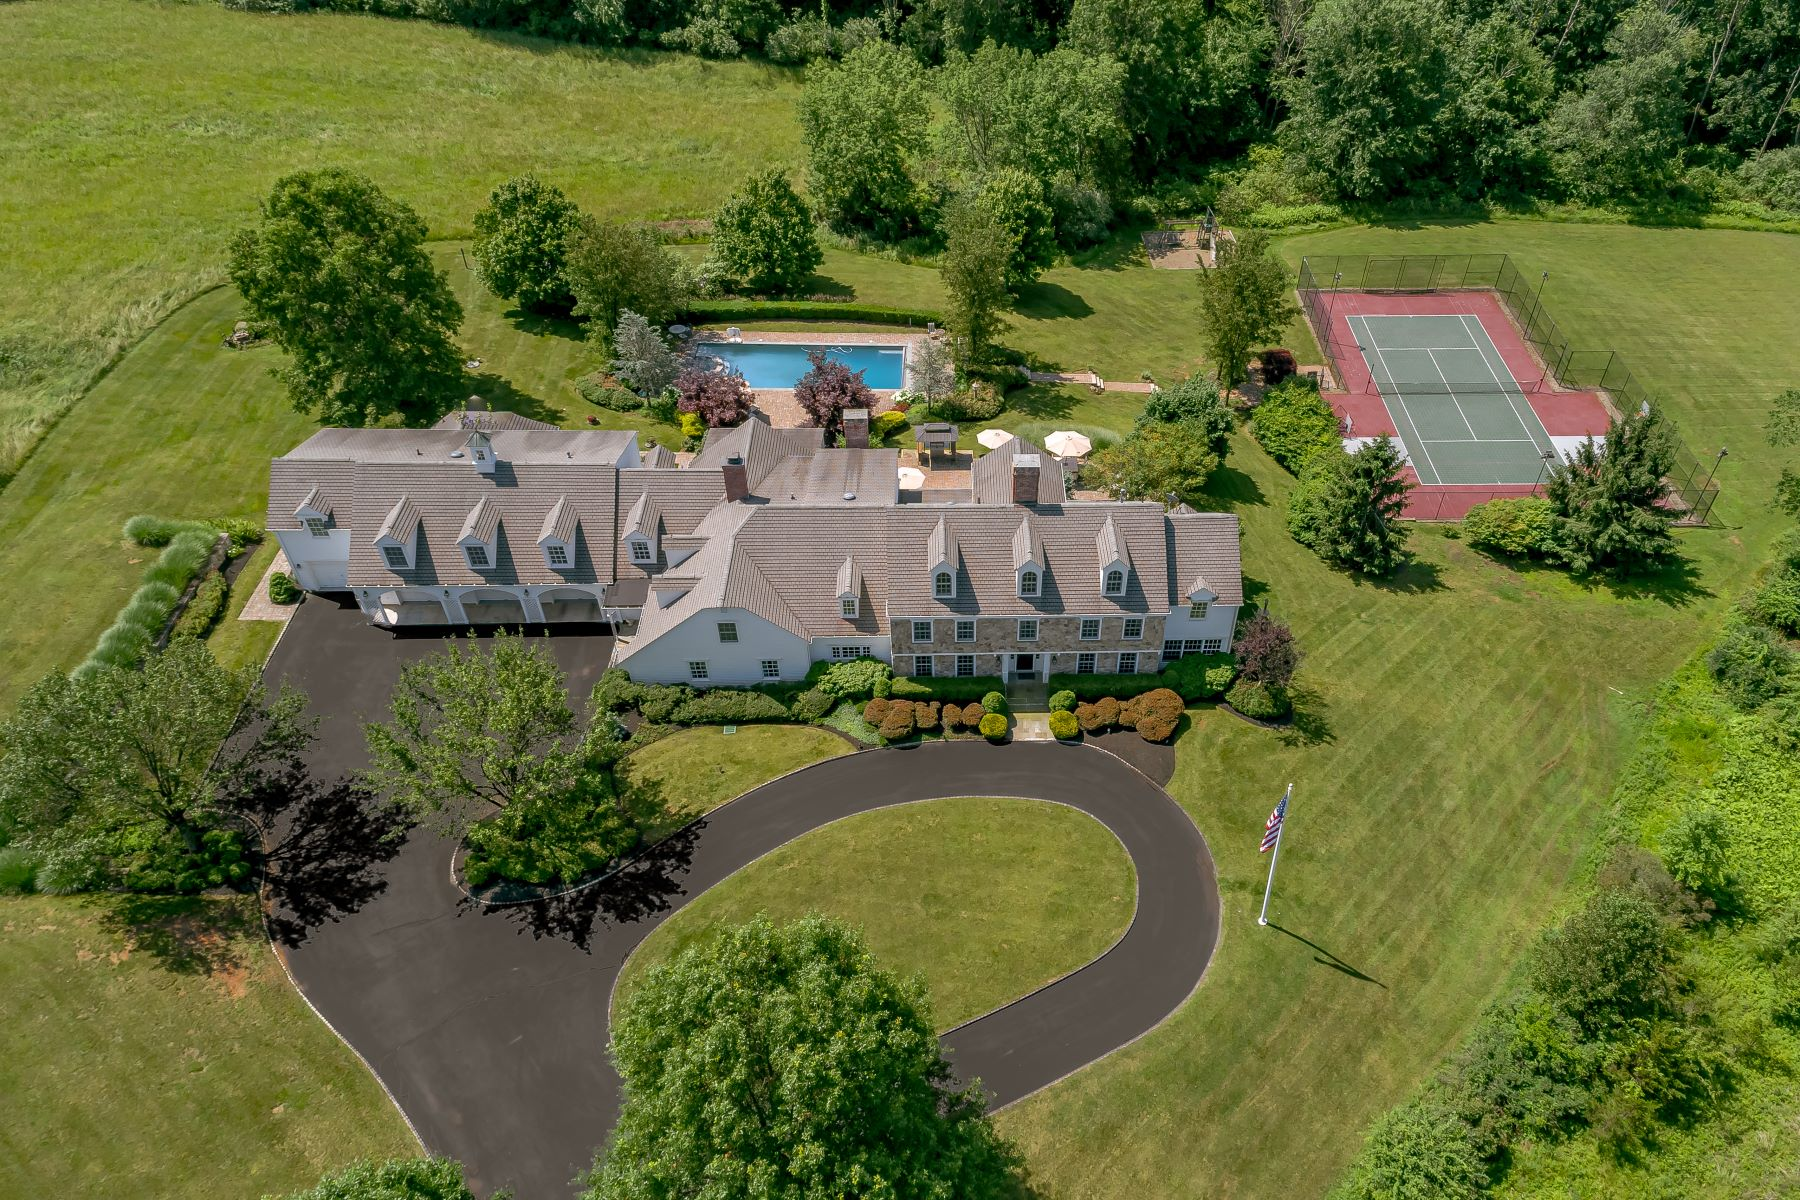 """Single Family Homes for Sale at """"Oakland Farm"""" 520 Pottersville Road Bedminster, New Jersey 07921 United States"""